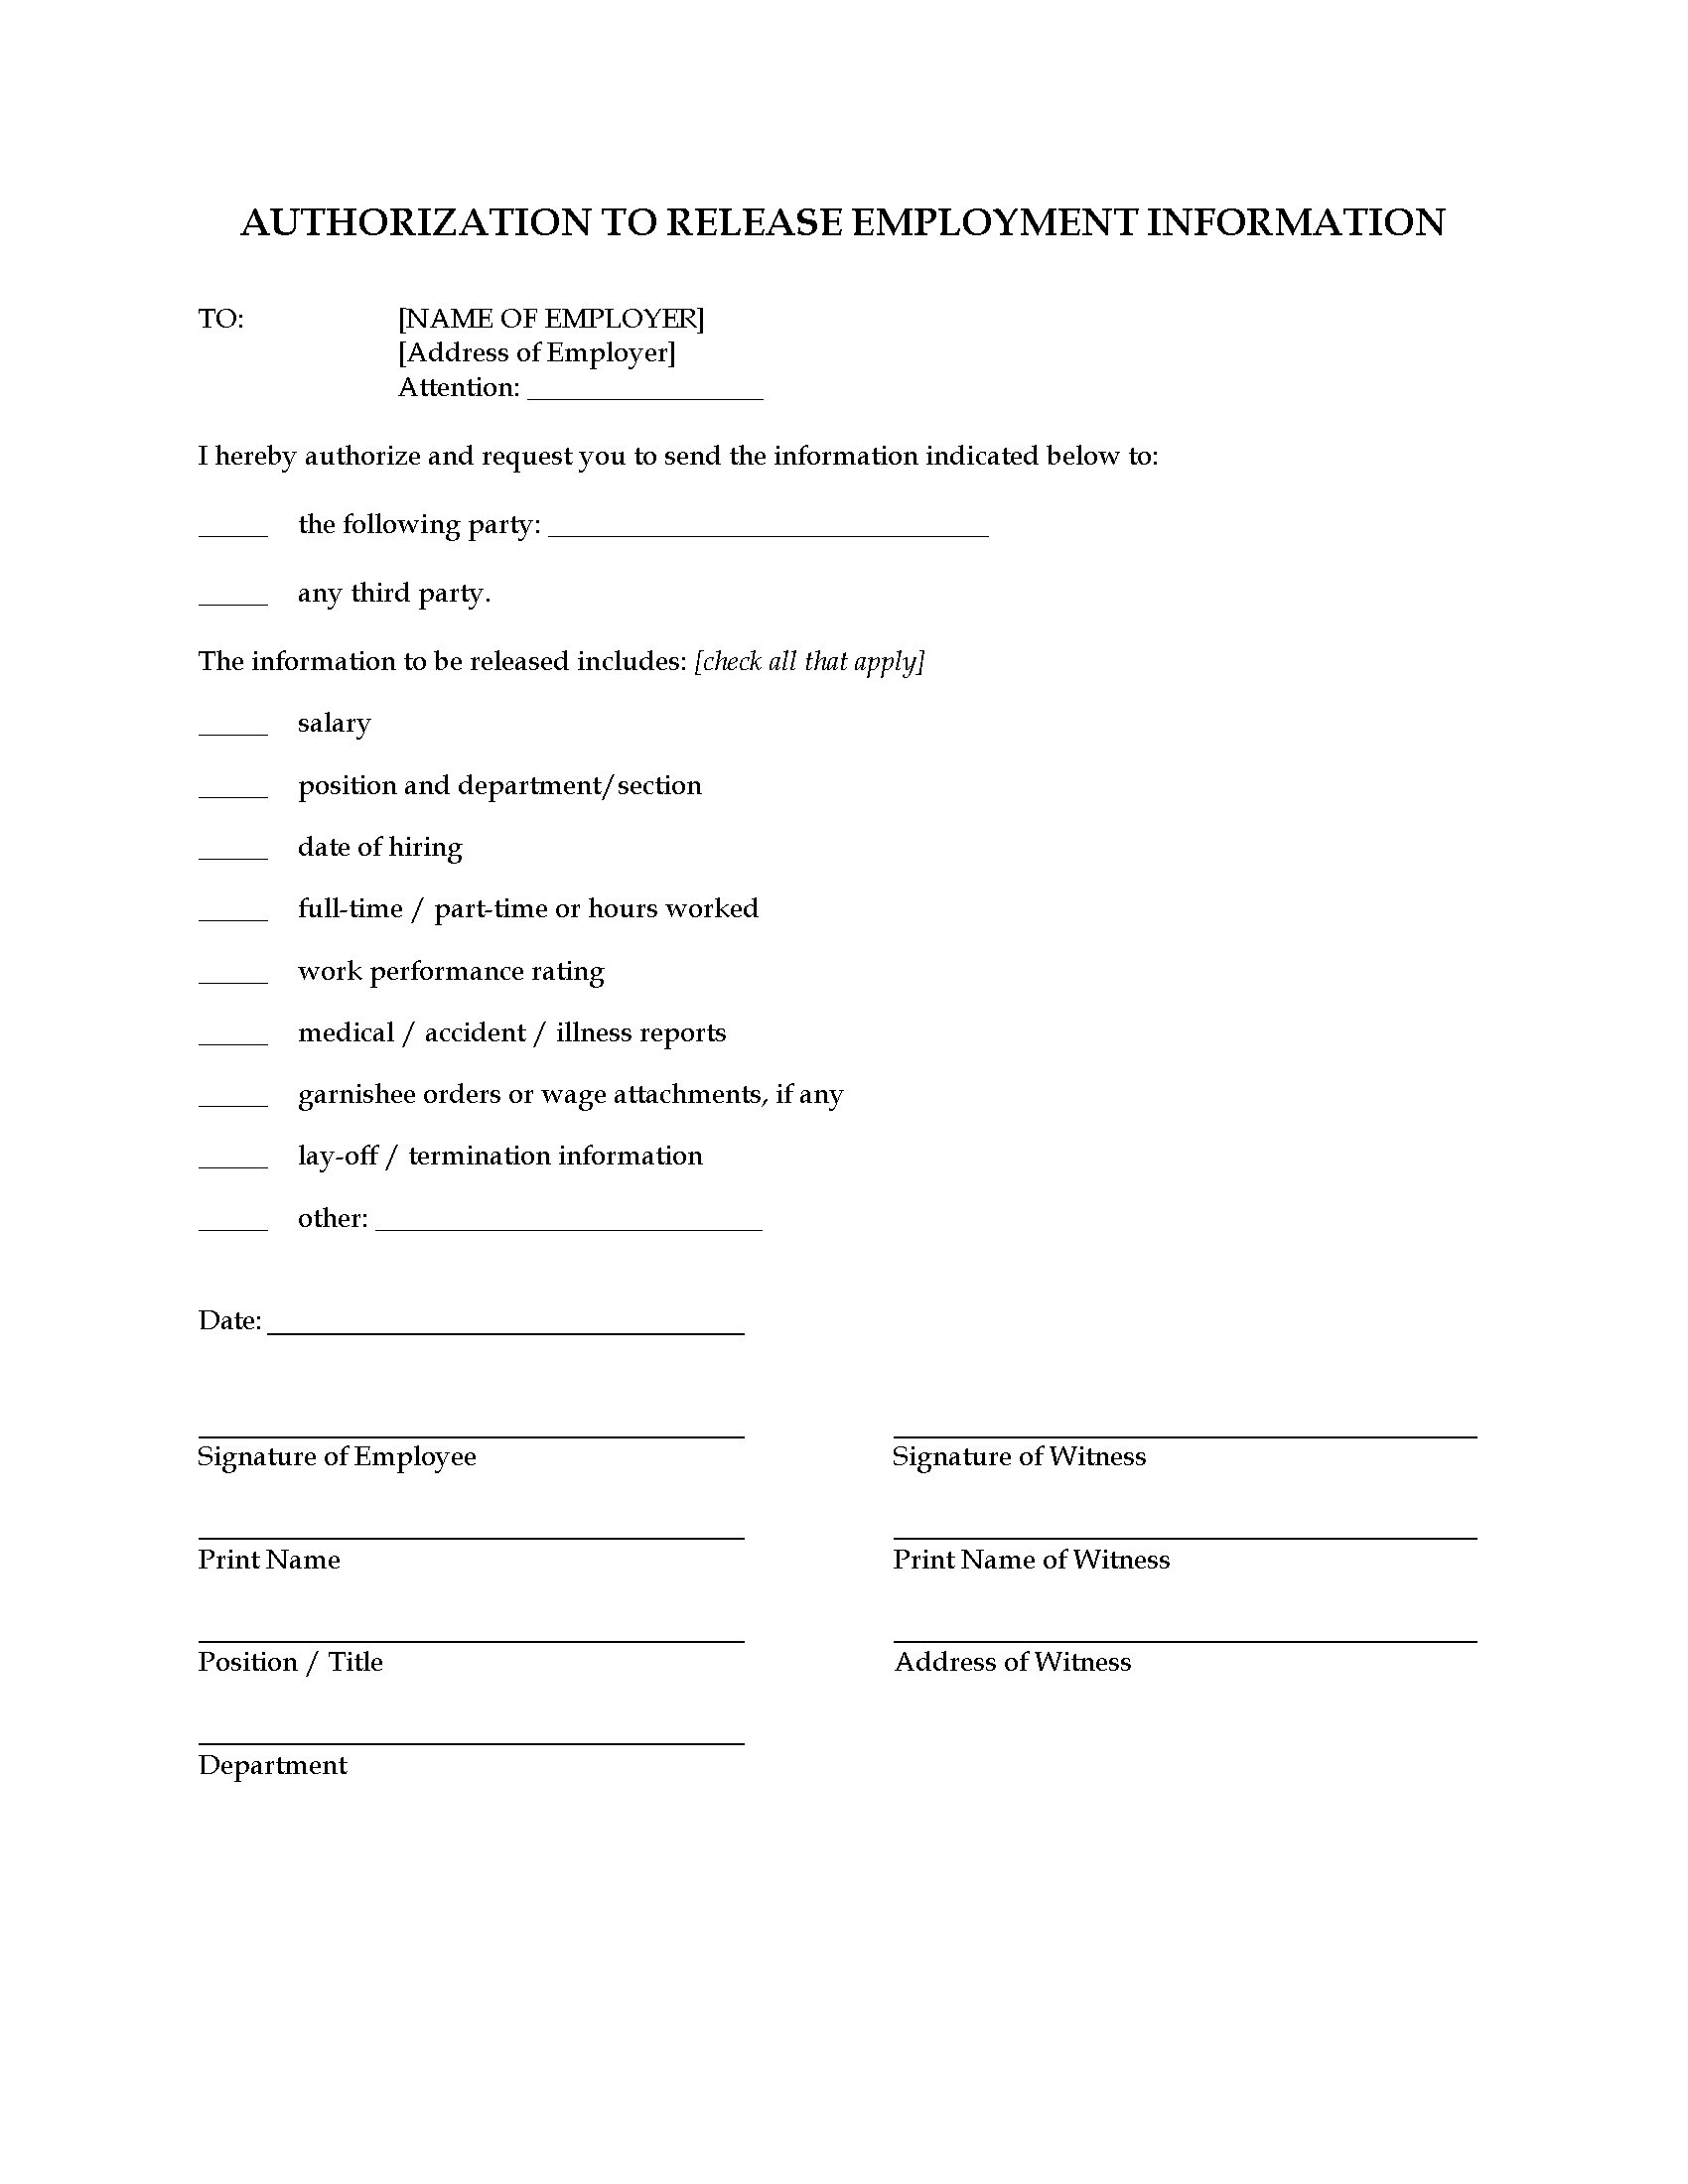 transport canada application for transportation security clearance